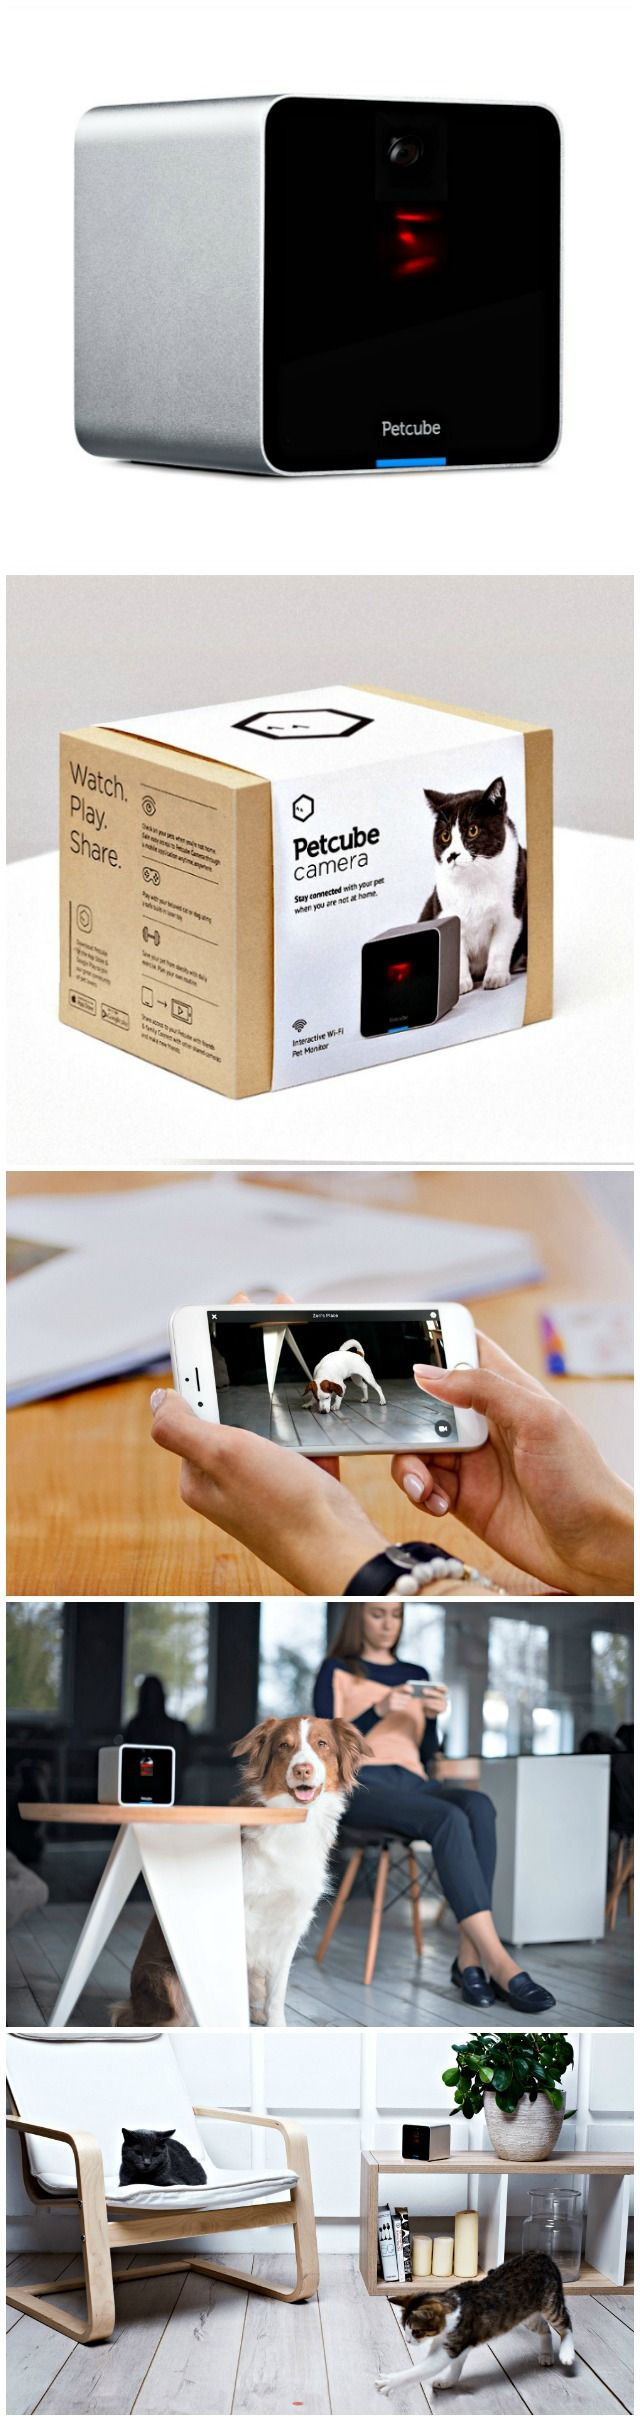 best pet gadgets images on pinterest pets dog accessories and